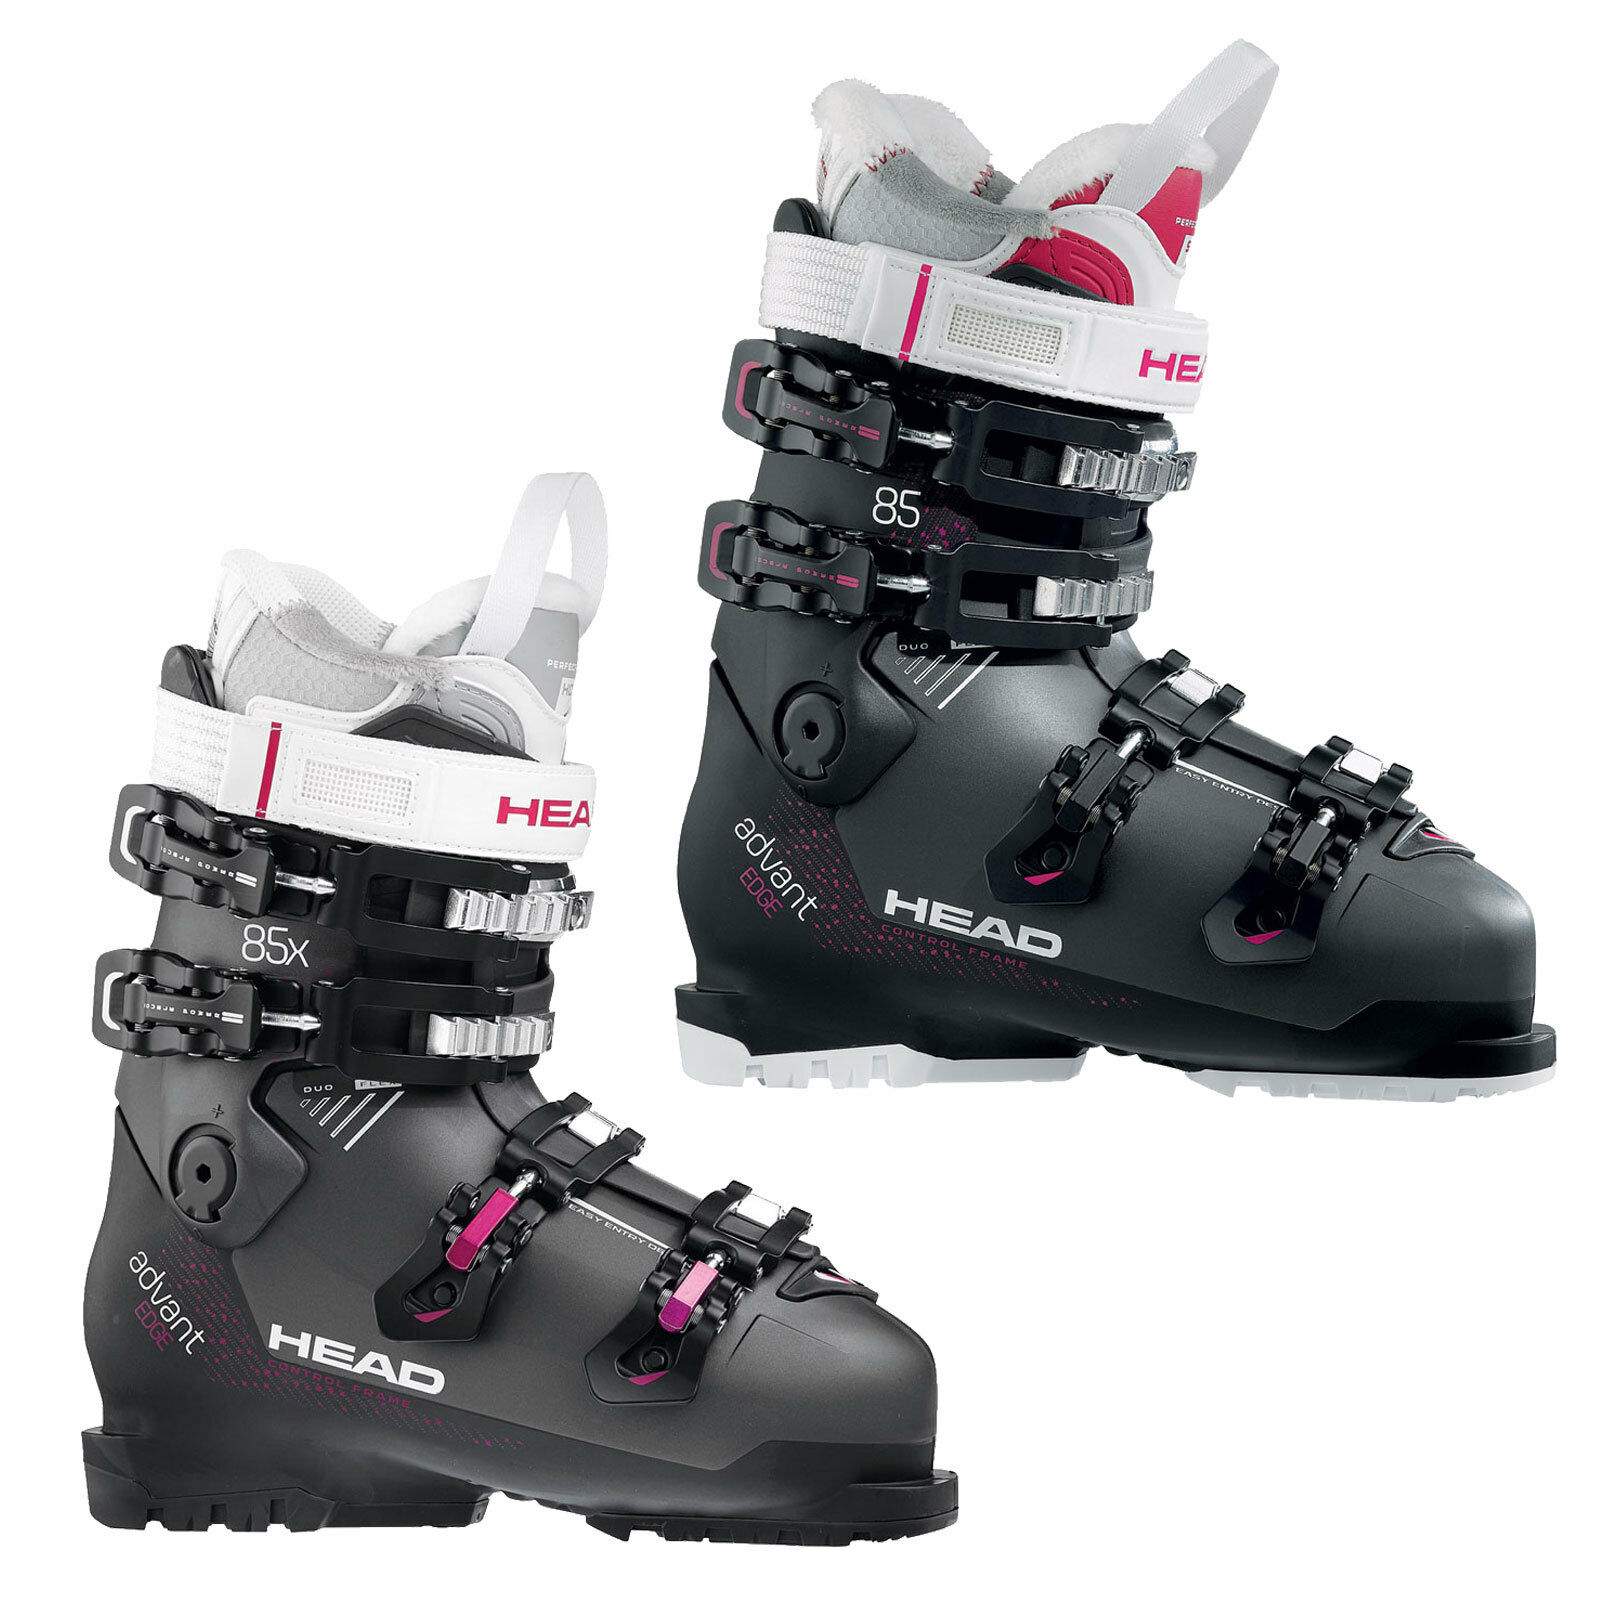 Head Advant Edge  85 W Ladies Ski Boots Ski Boots Ski Boots 4-schnallen New Top  your satisfaction is our target